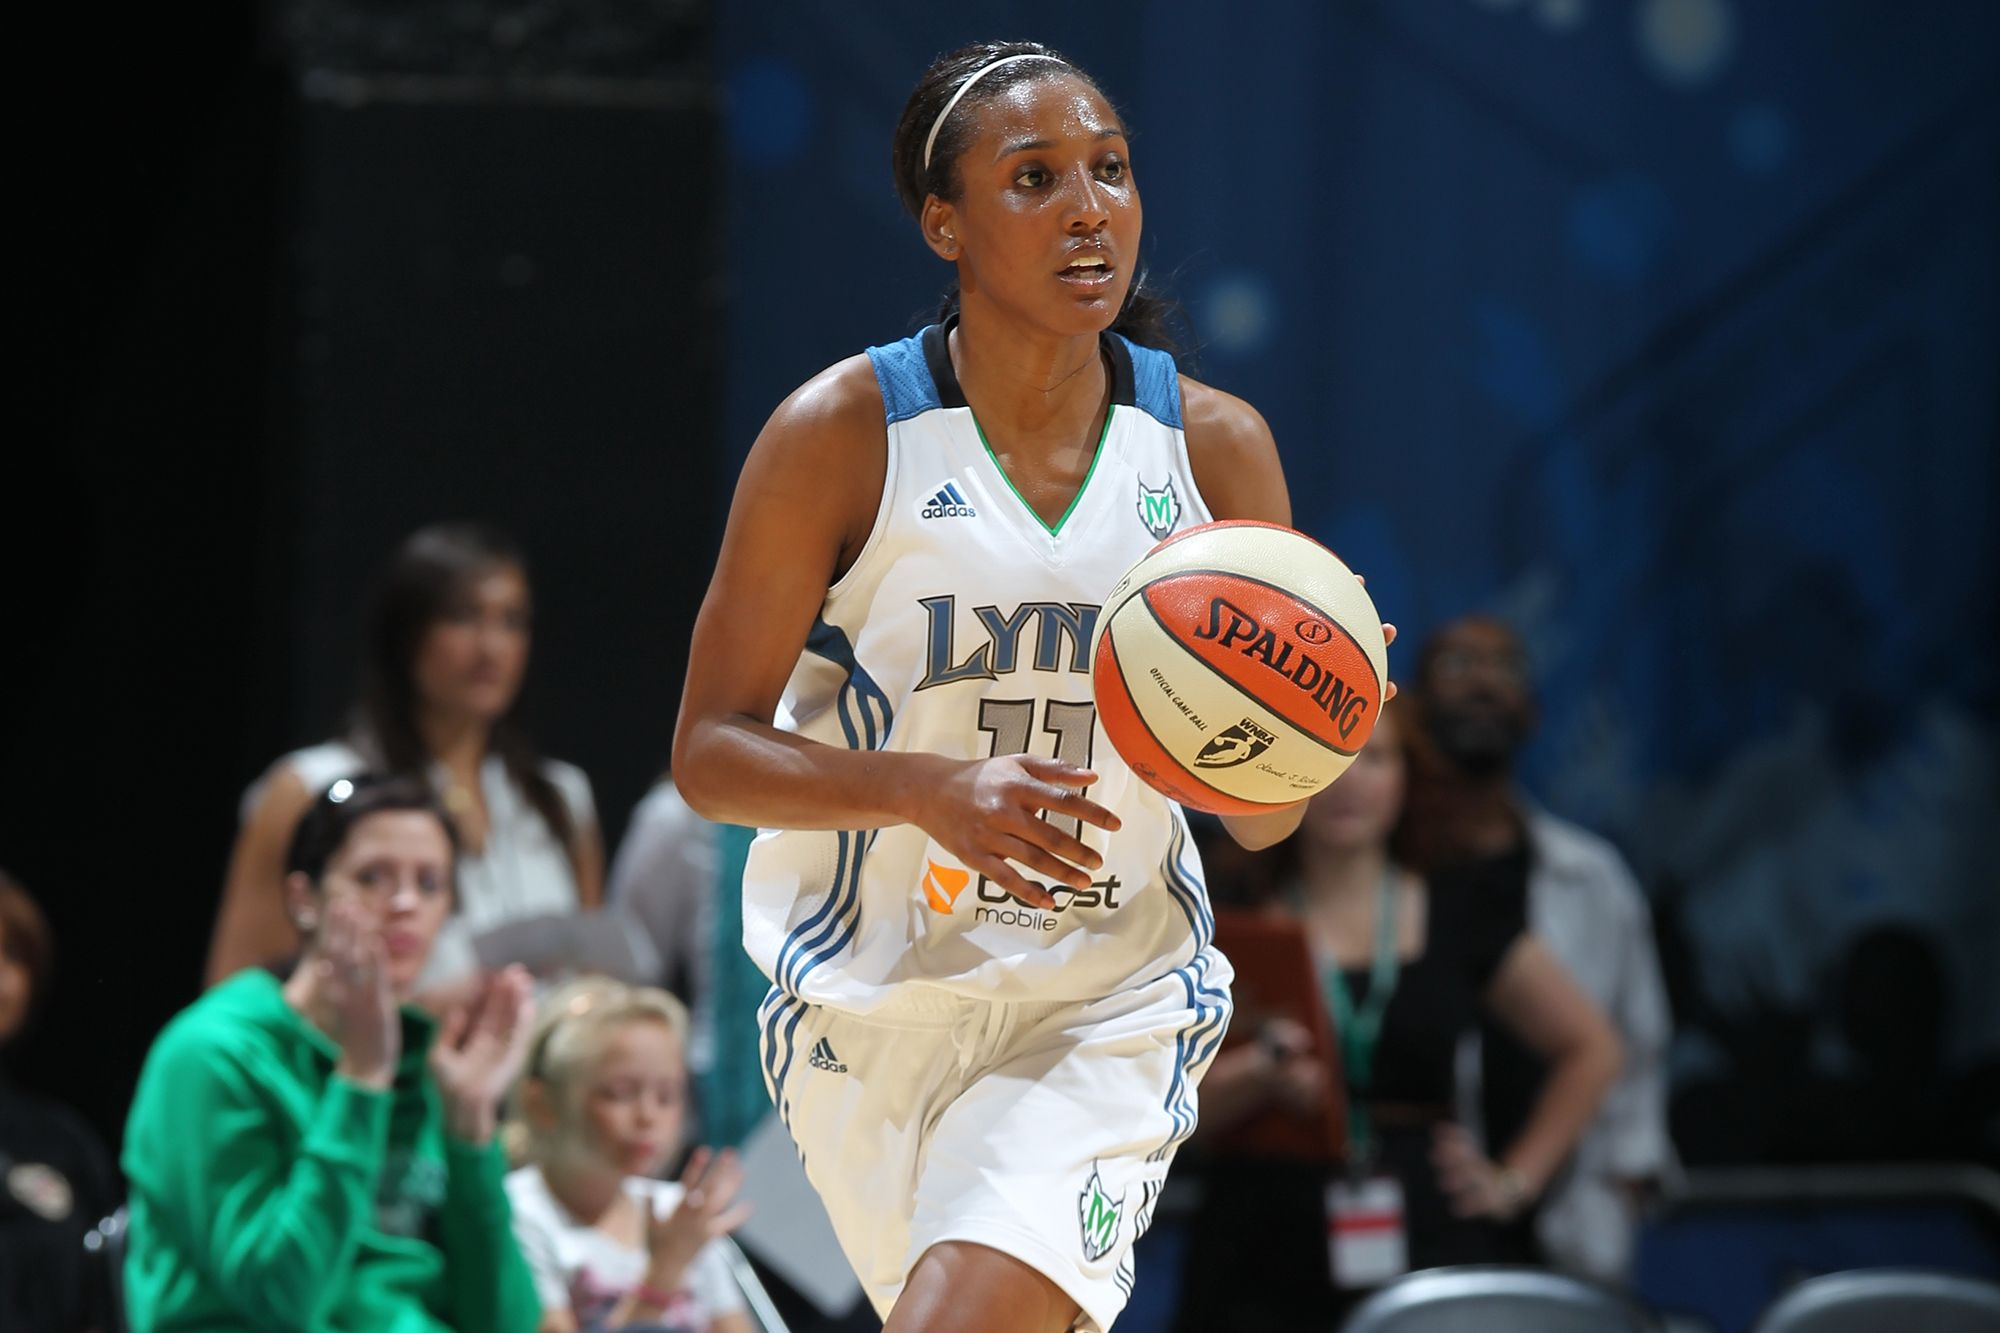 Candice Wiggins '04, former WNBA player